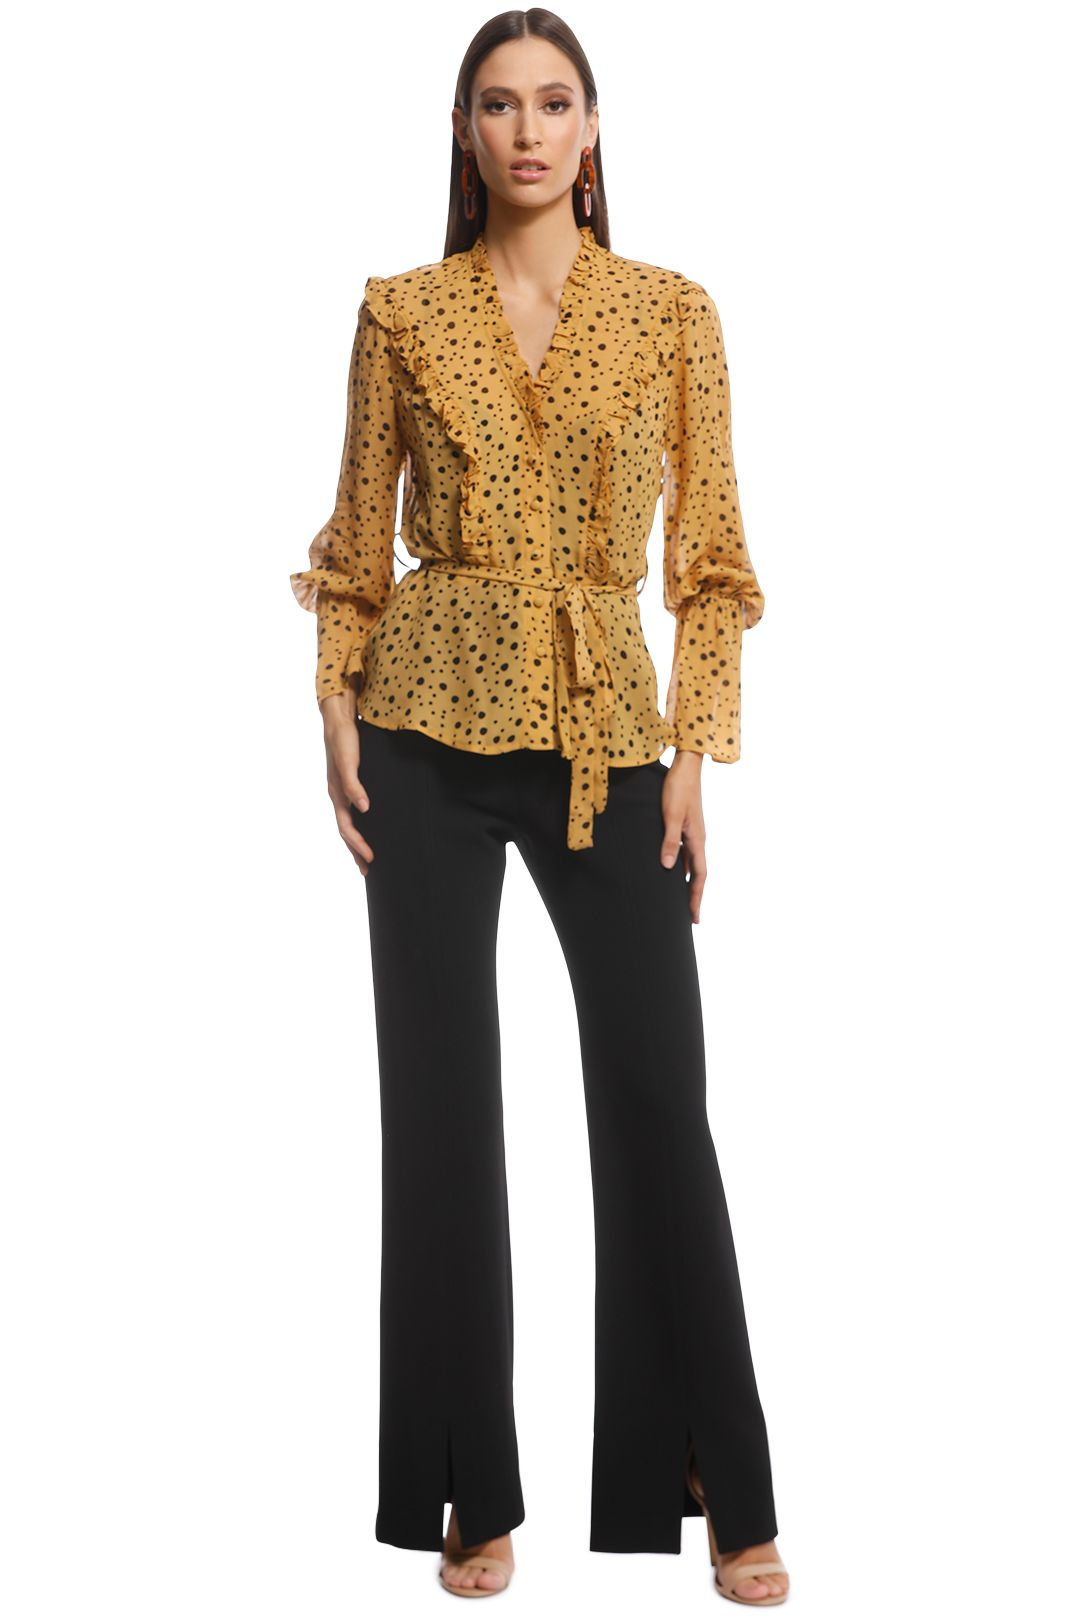 Ministry of Style - Songbird Top - Yellow Polkadot - Front